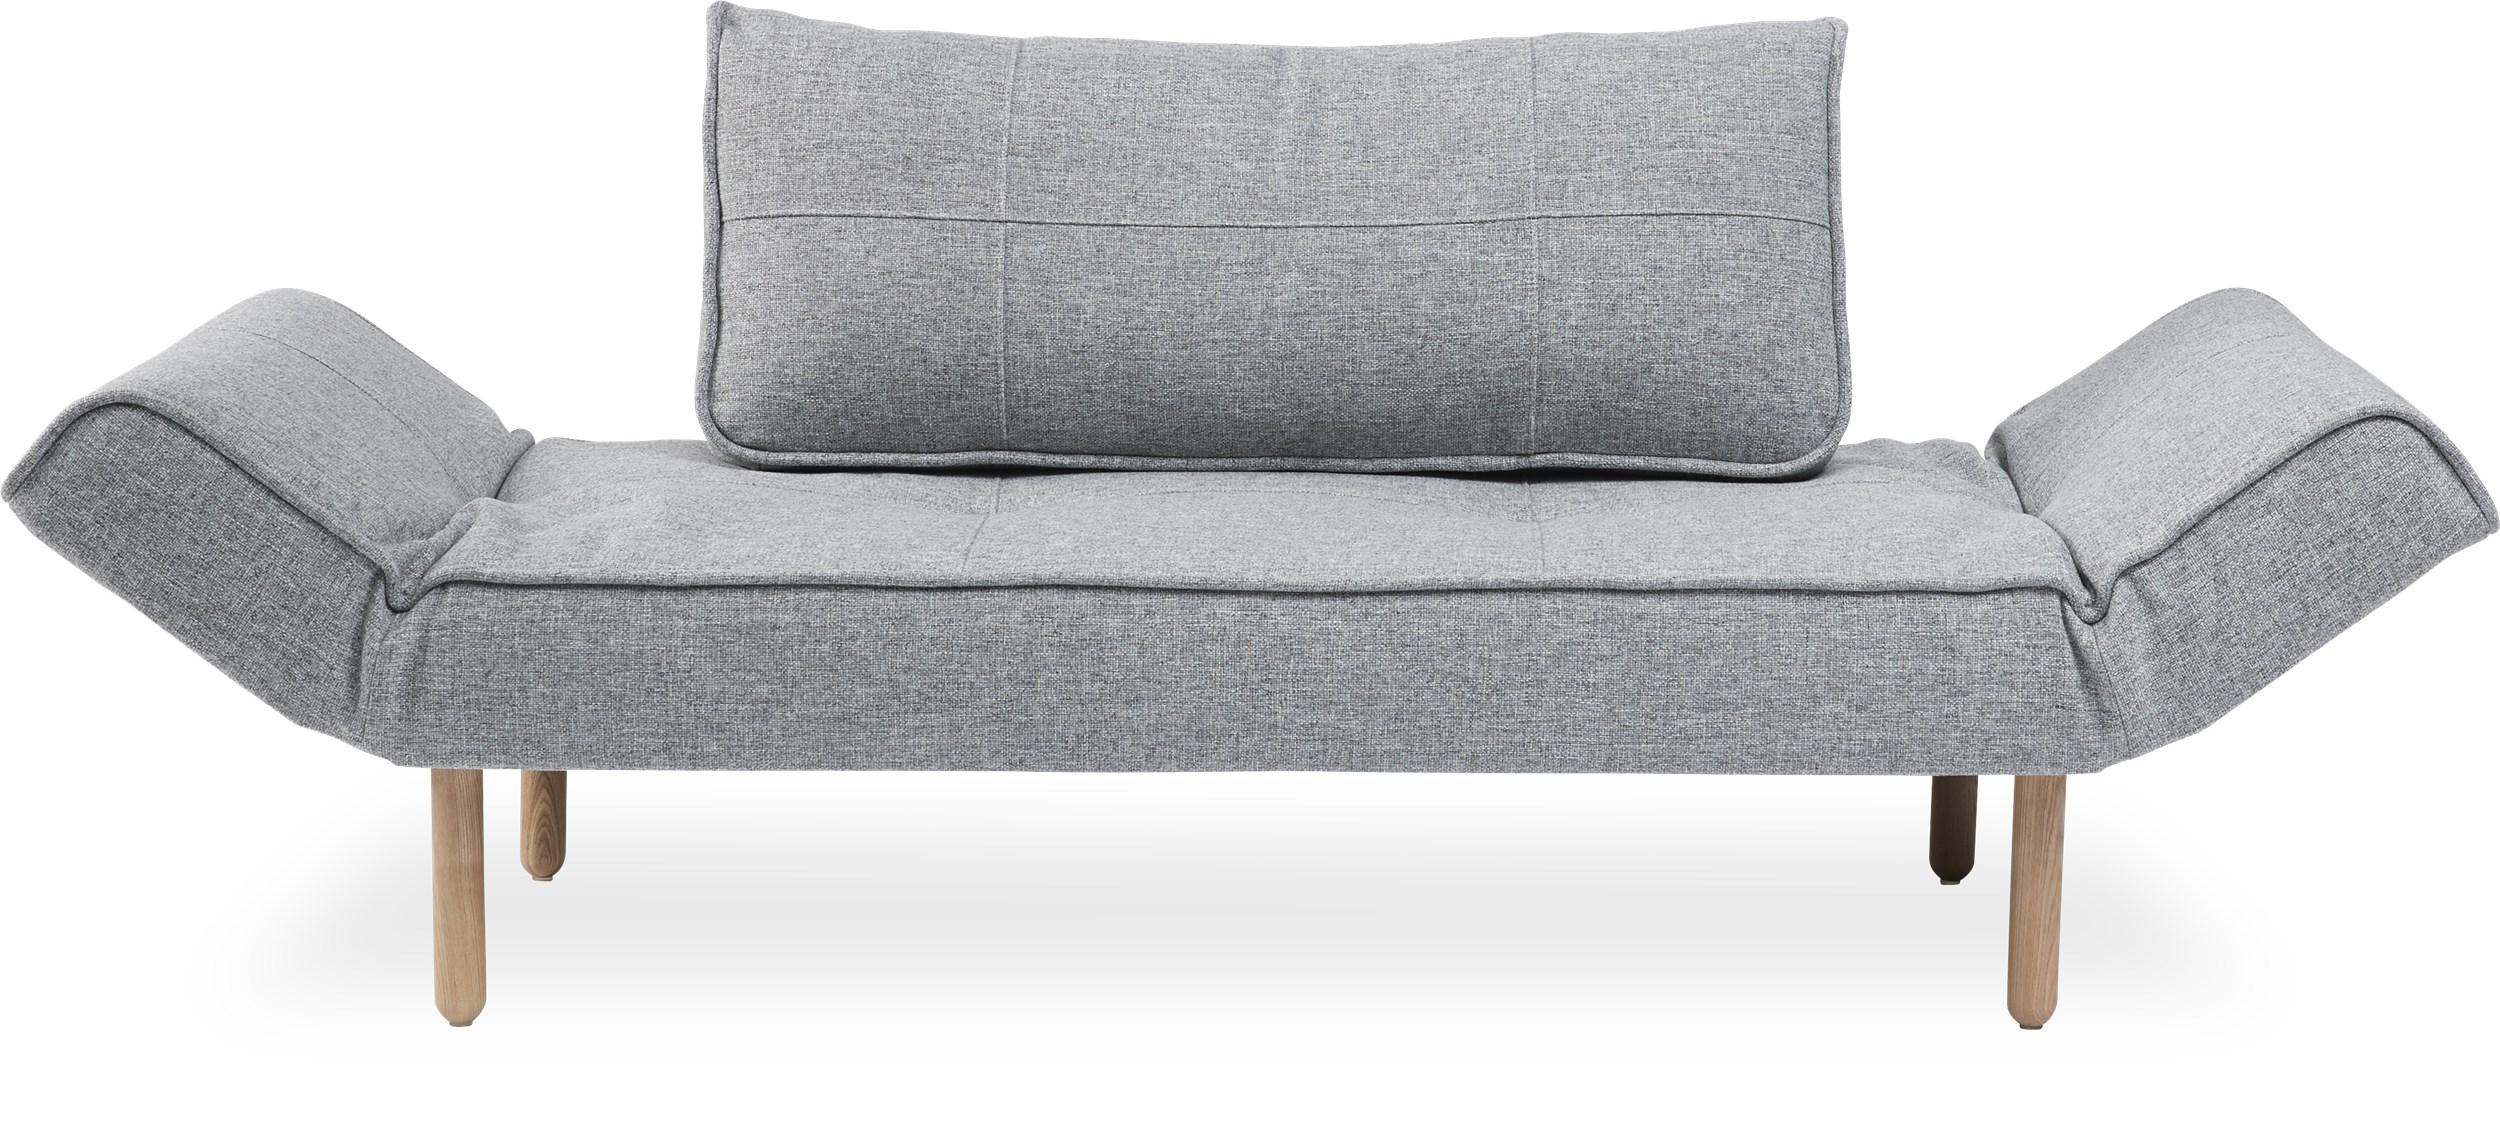 Innovation Living - Zeal Sovesofa - Twist 565 Granite og Stem ben i lyst træ